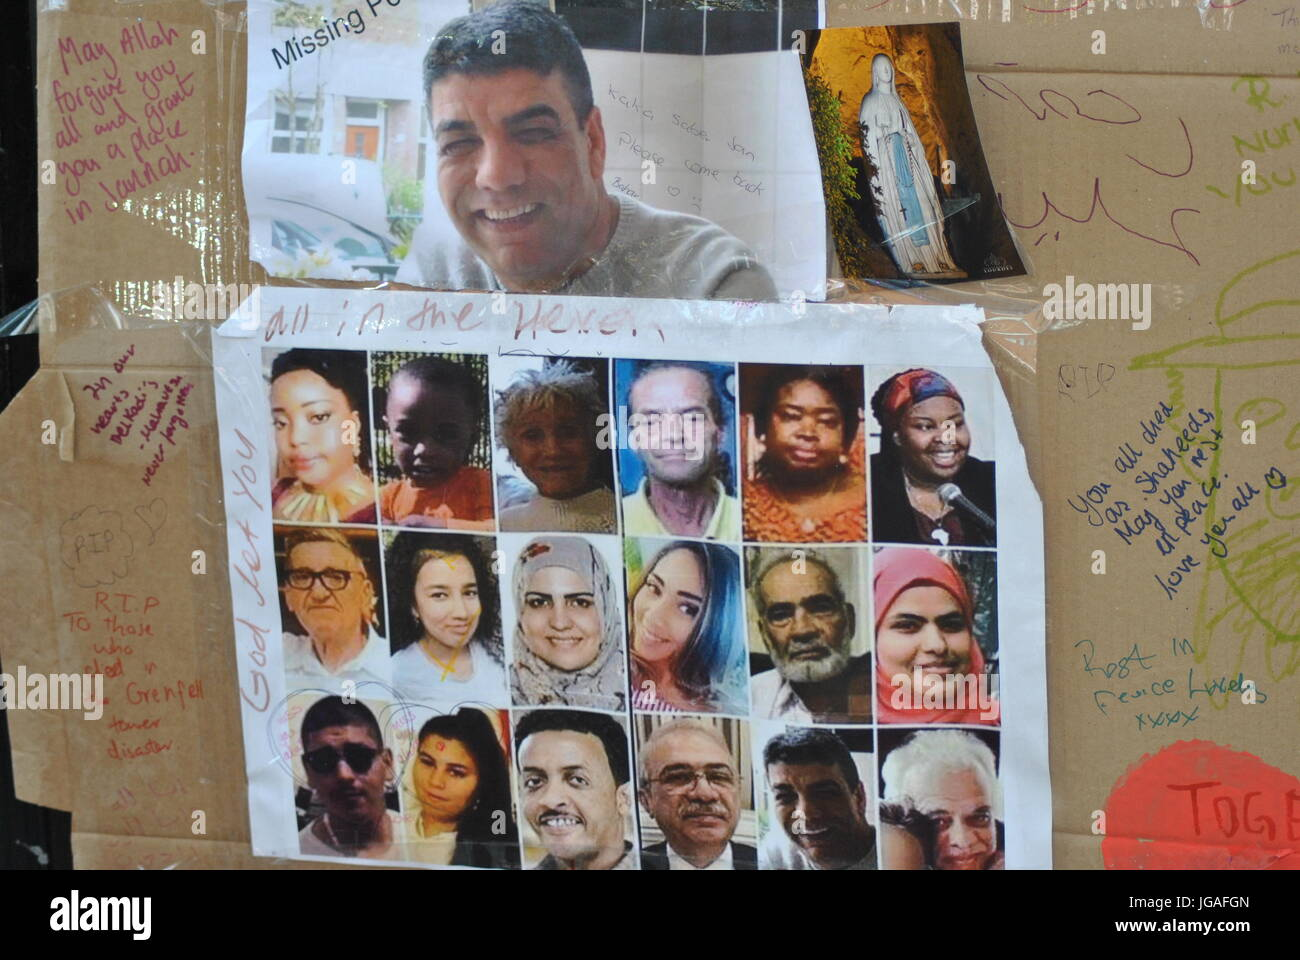 The Missing Posters from the Grenfell Tower Fire Disaster, London which occurred 14th June, 2017. - Stock Image